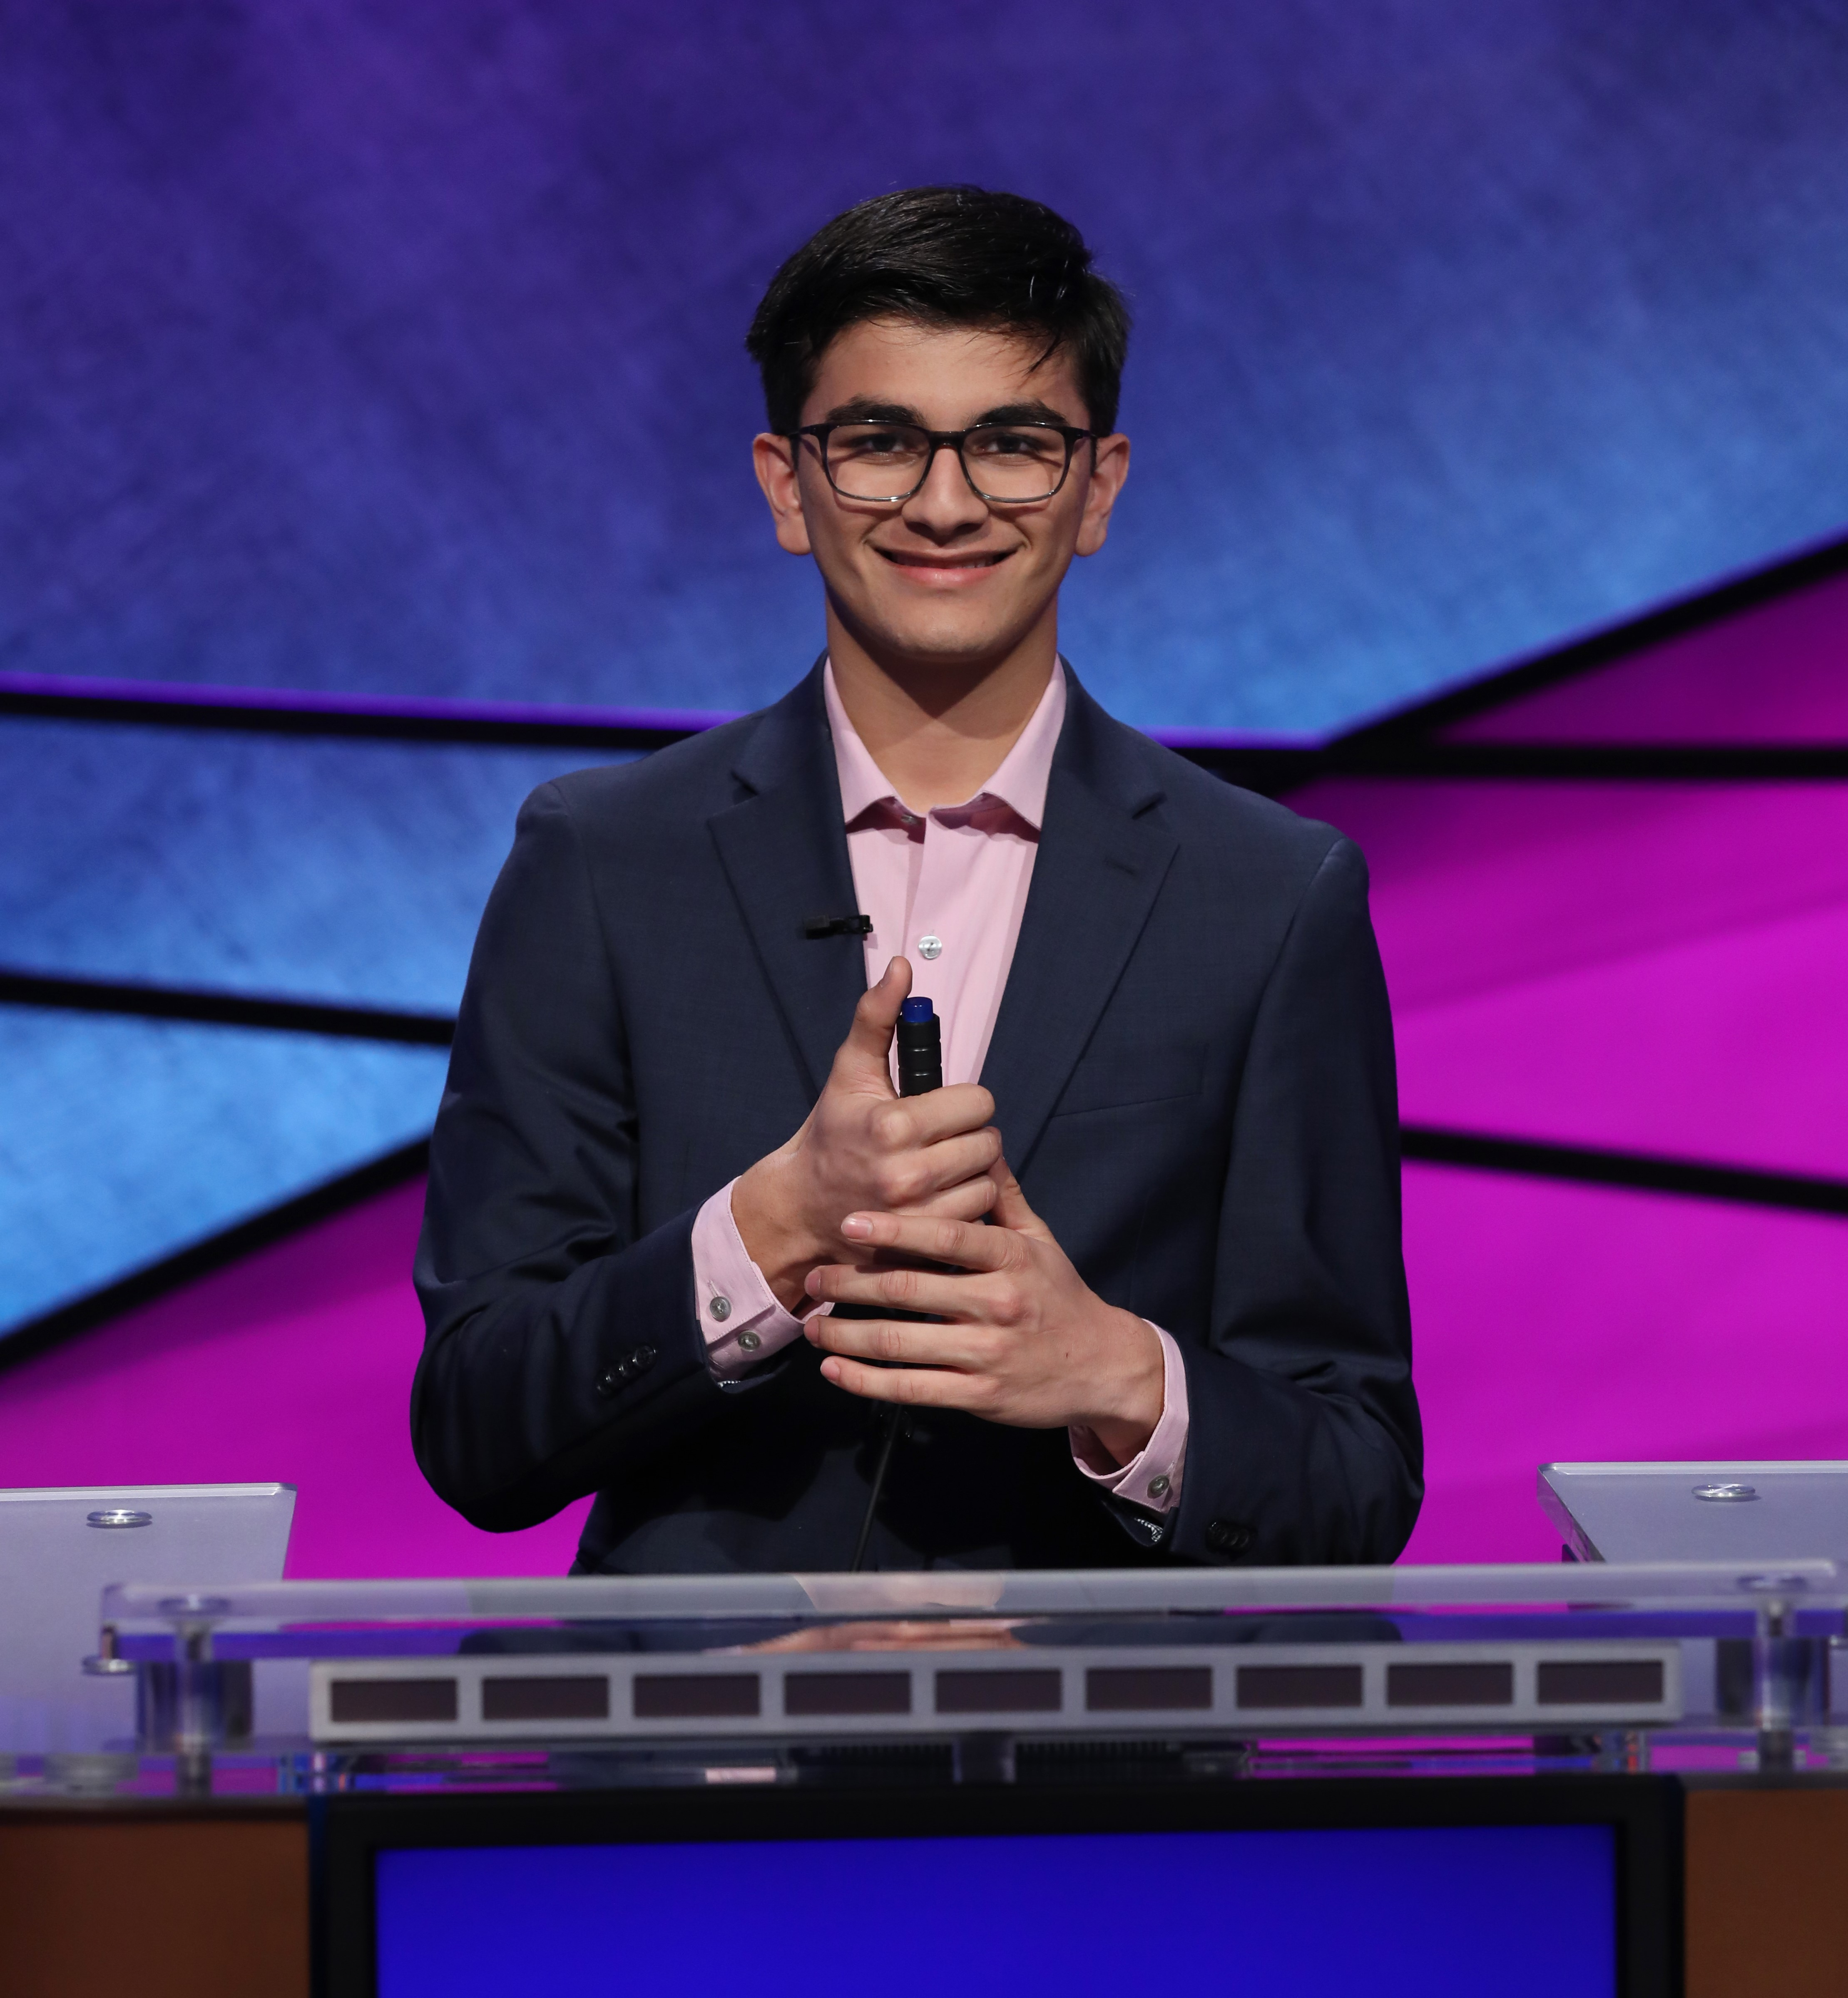 Portland high school student will compete in 'Jeopardy